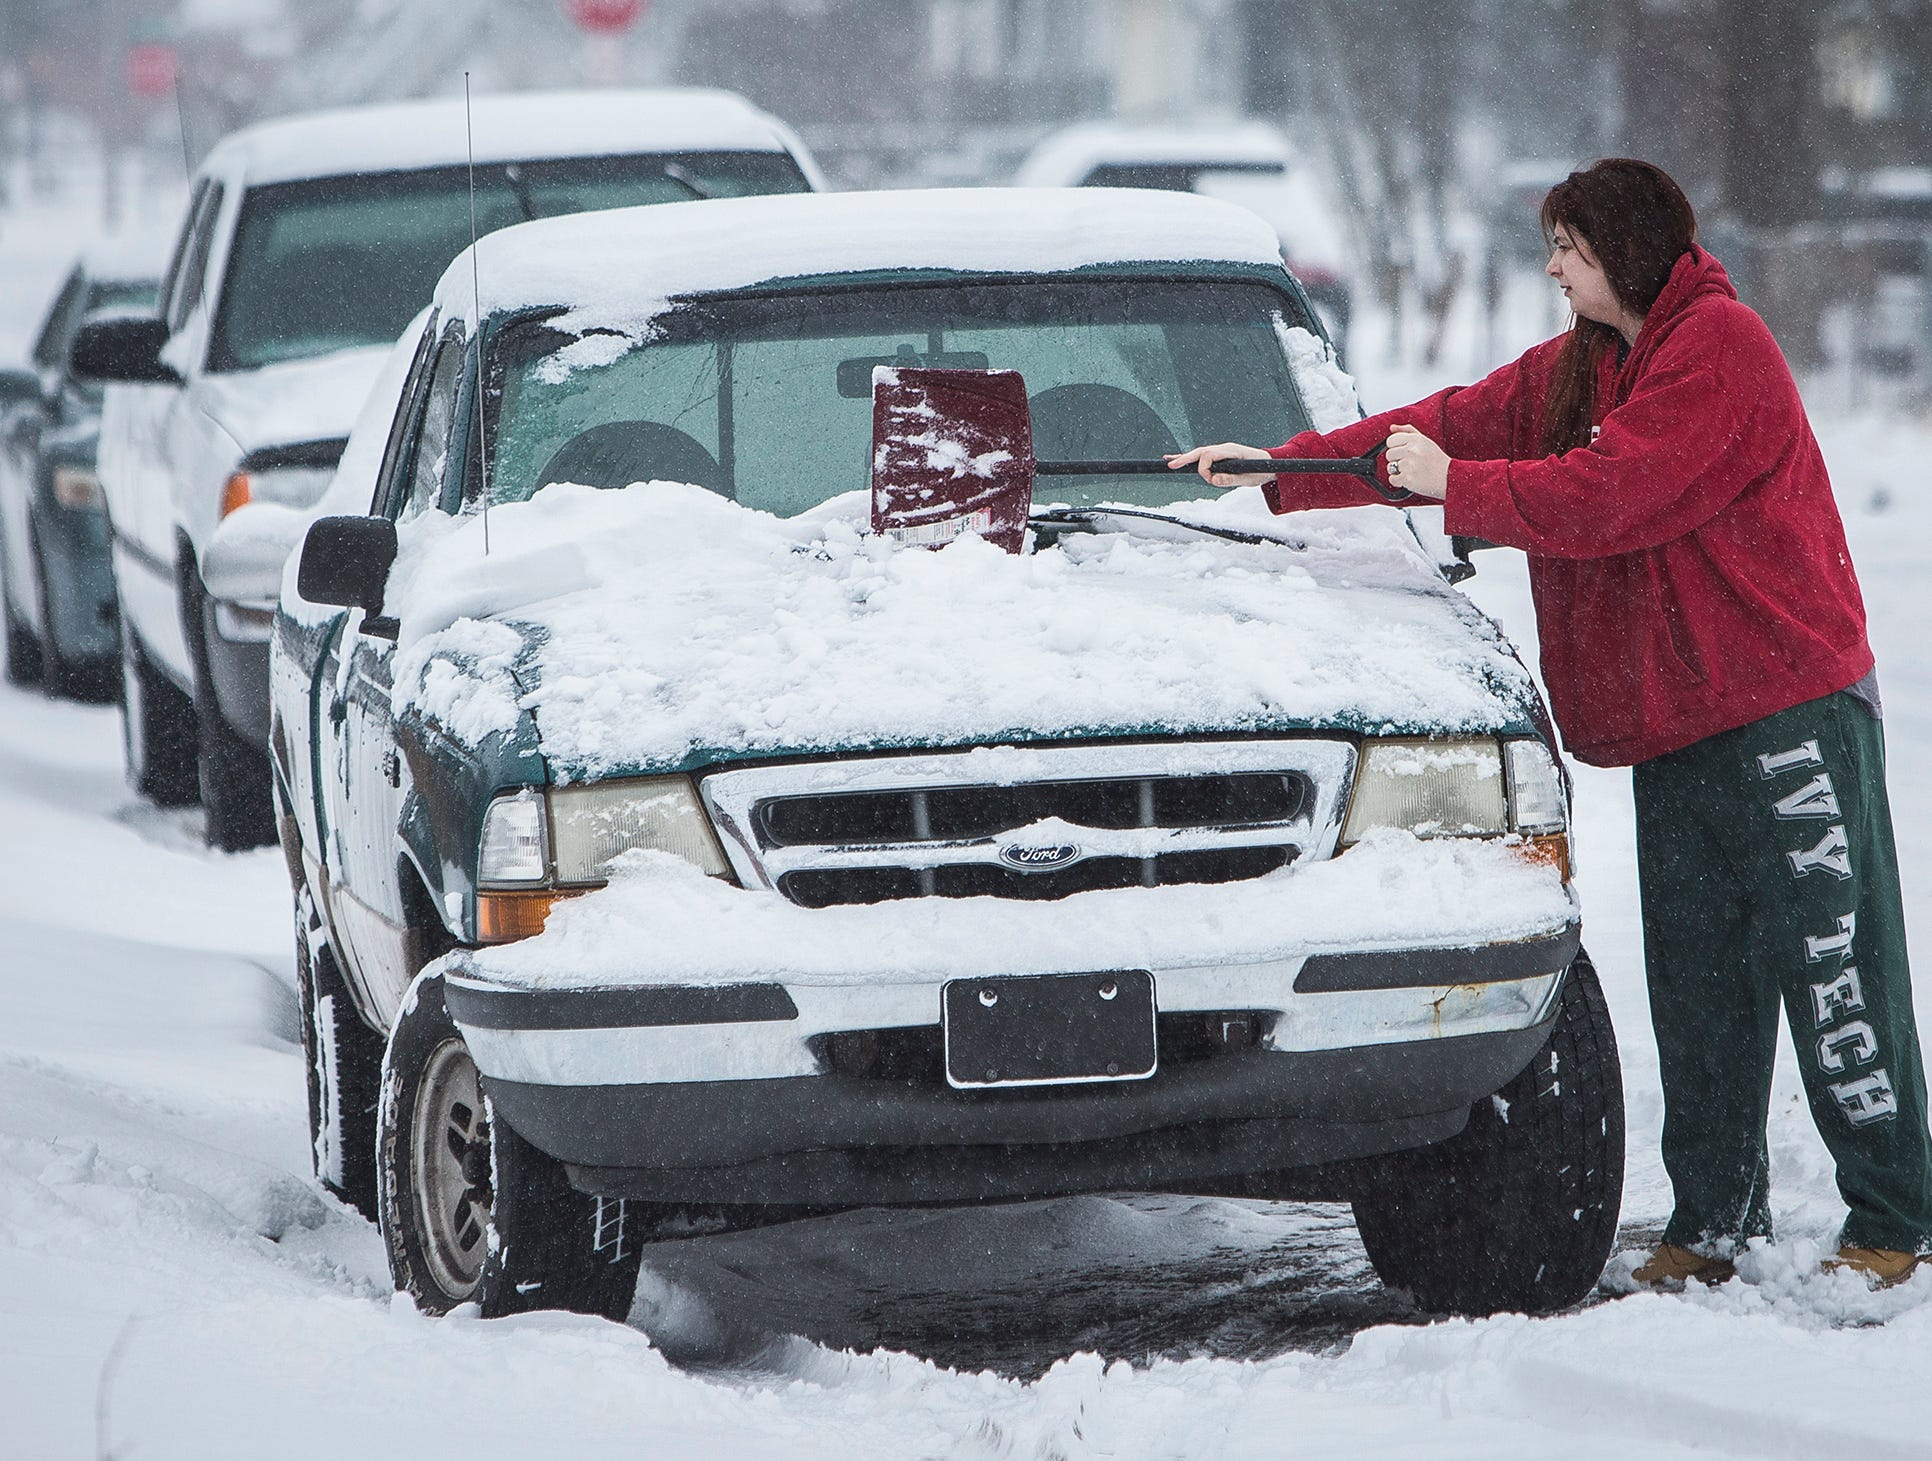 Heavy snow created slick roads and low visibility in Delaware County throughout the day Saturday. Weather services are predicting four to seven inches of snowfall. A winter storm warning remains in effect until 7 a.m. Sunday.